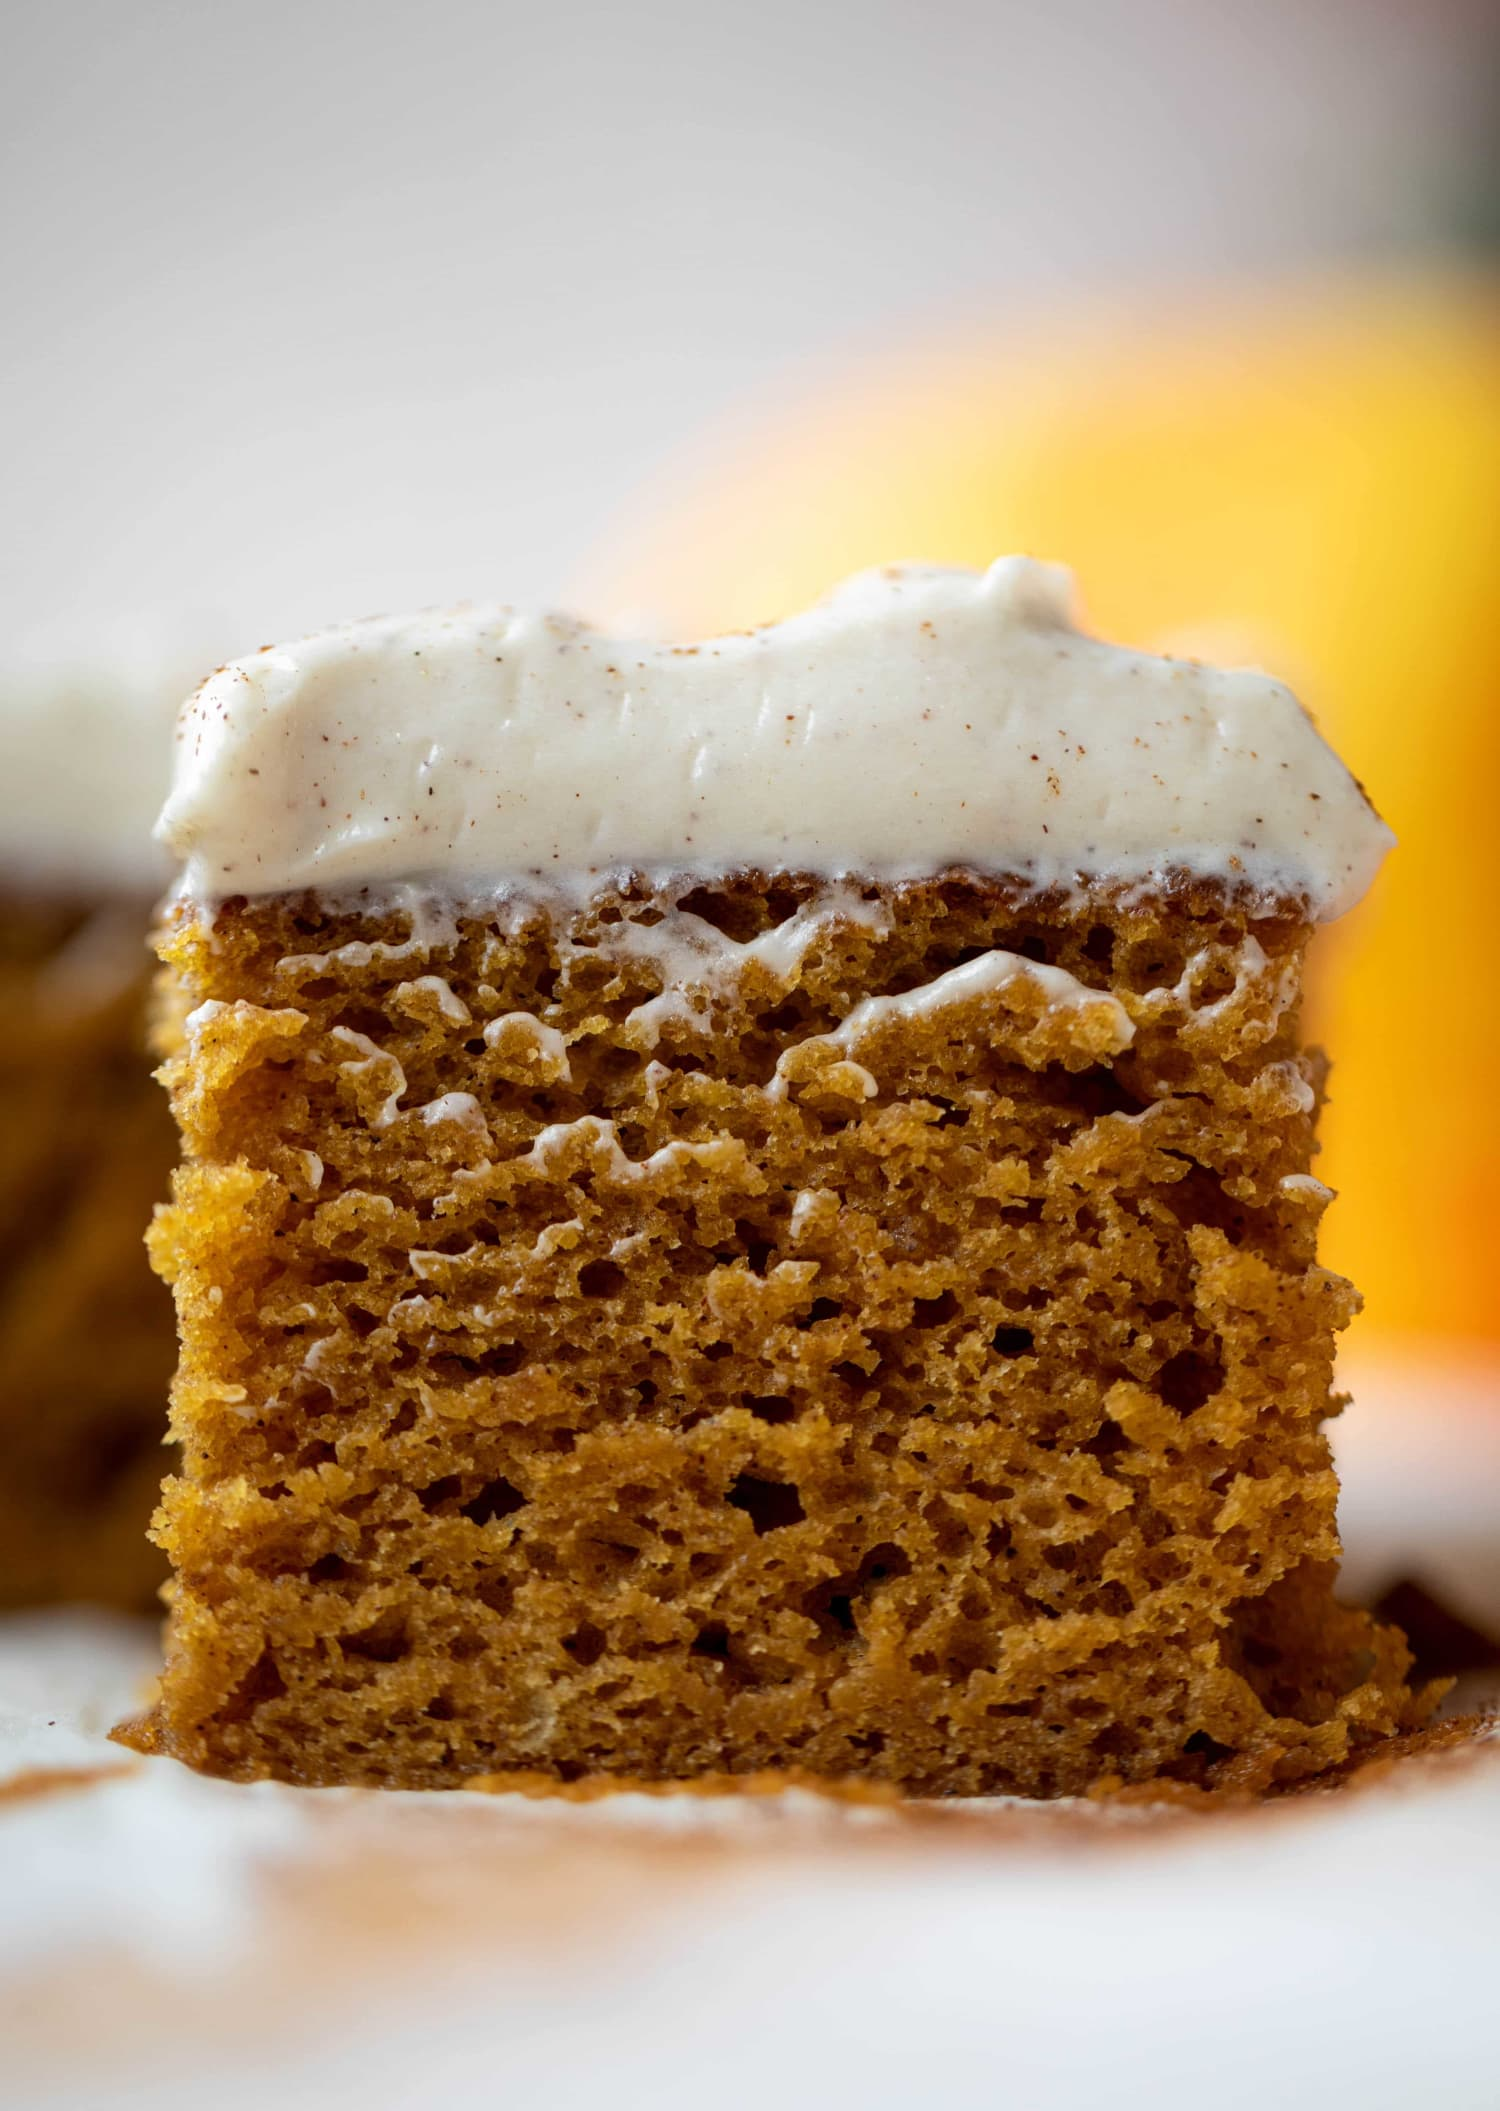 You Need to Try This Pumpkin Sheet Cake with Cinnamon Cream Cheese Frosting ASAP